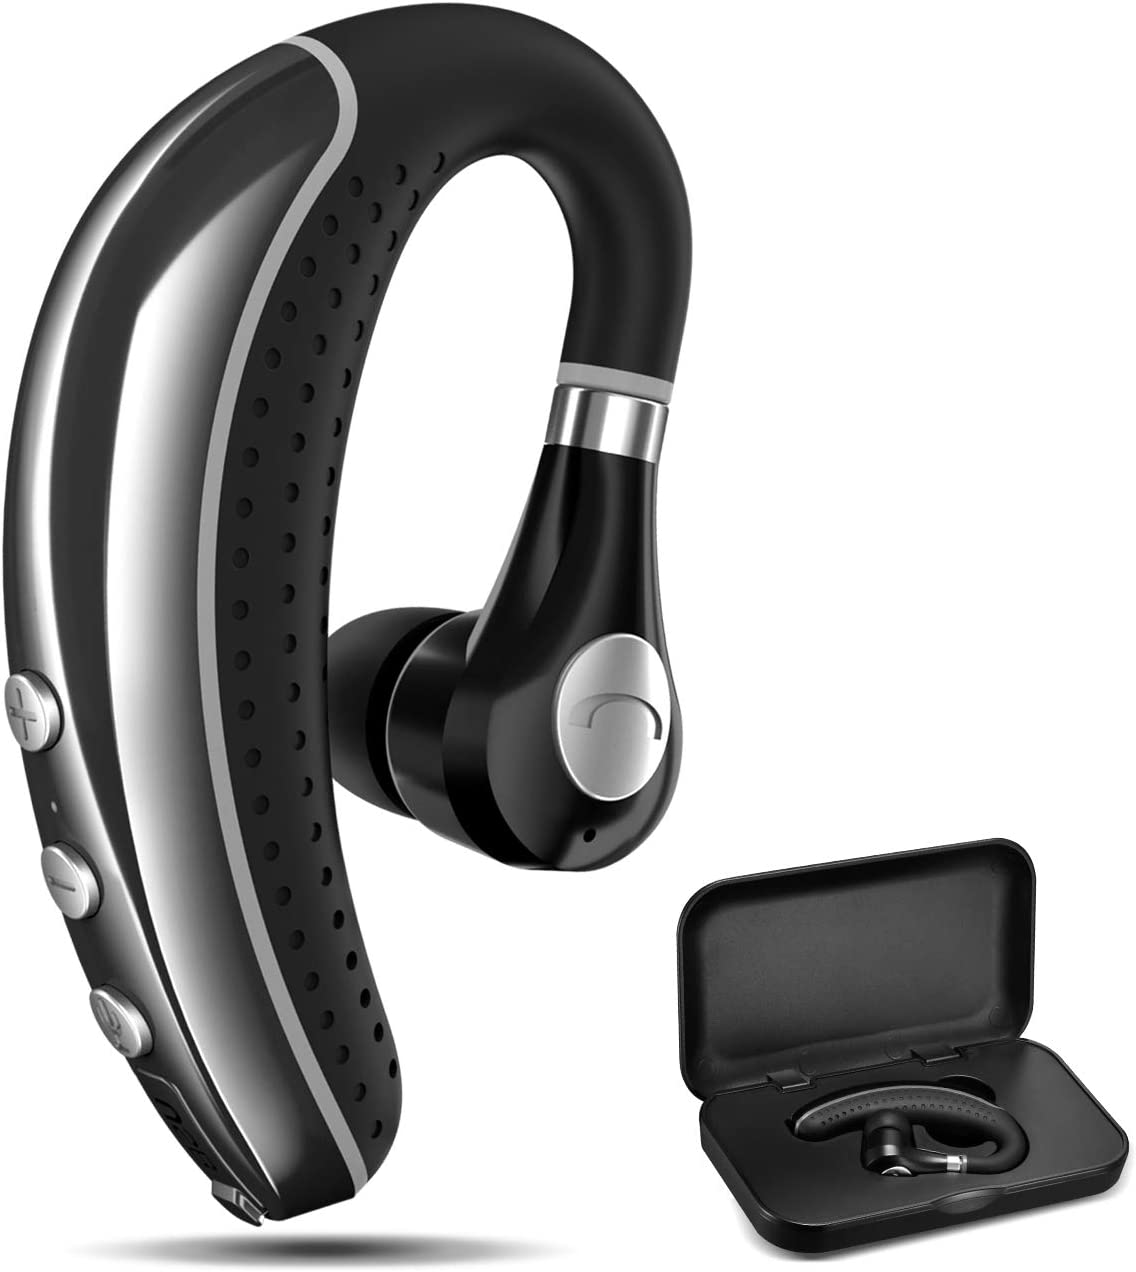 Amazon Com Bluetooth Headset Comexion V5 0 Bluetooth Earpiece With Mic And Mute Key Wireless Noise Reduction Business Earphone For Driving Meeting Listening